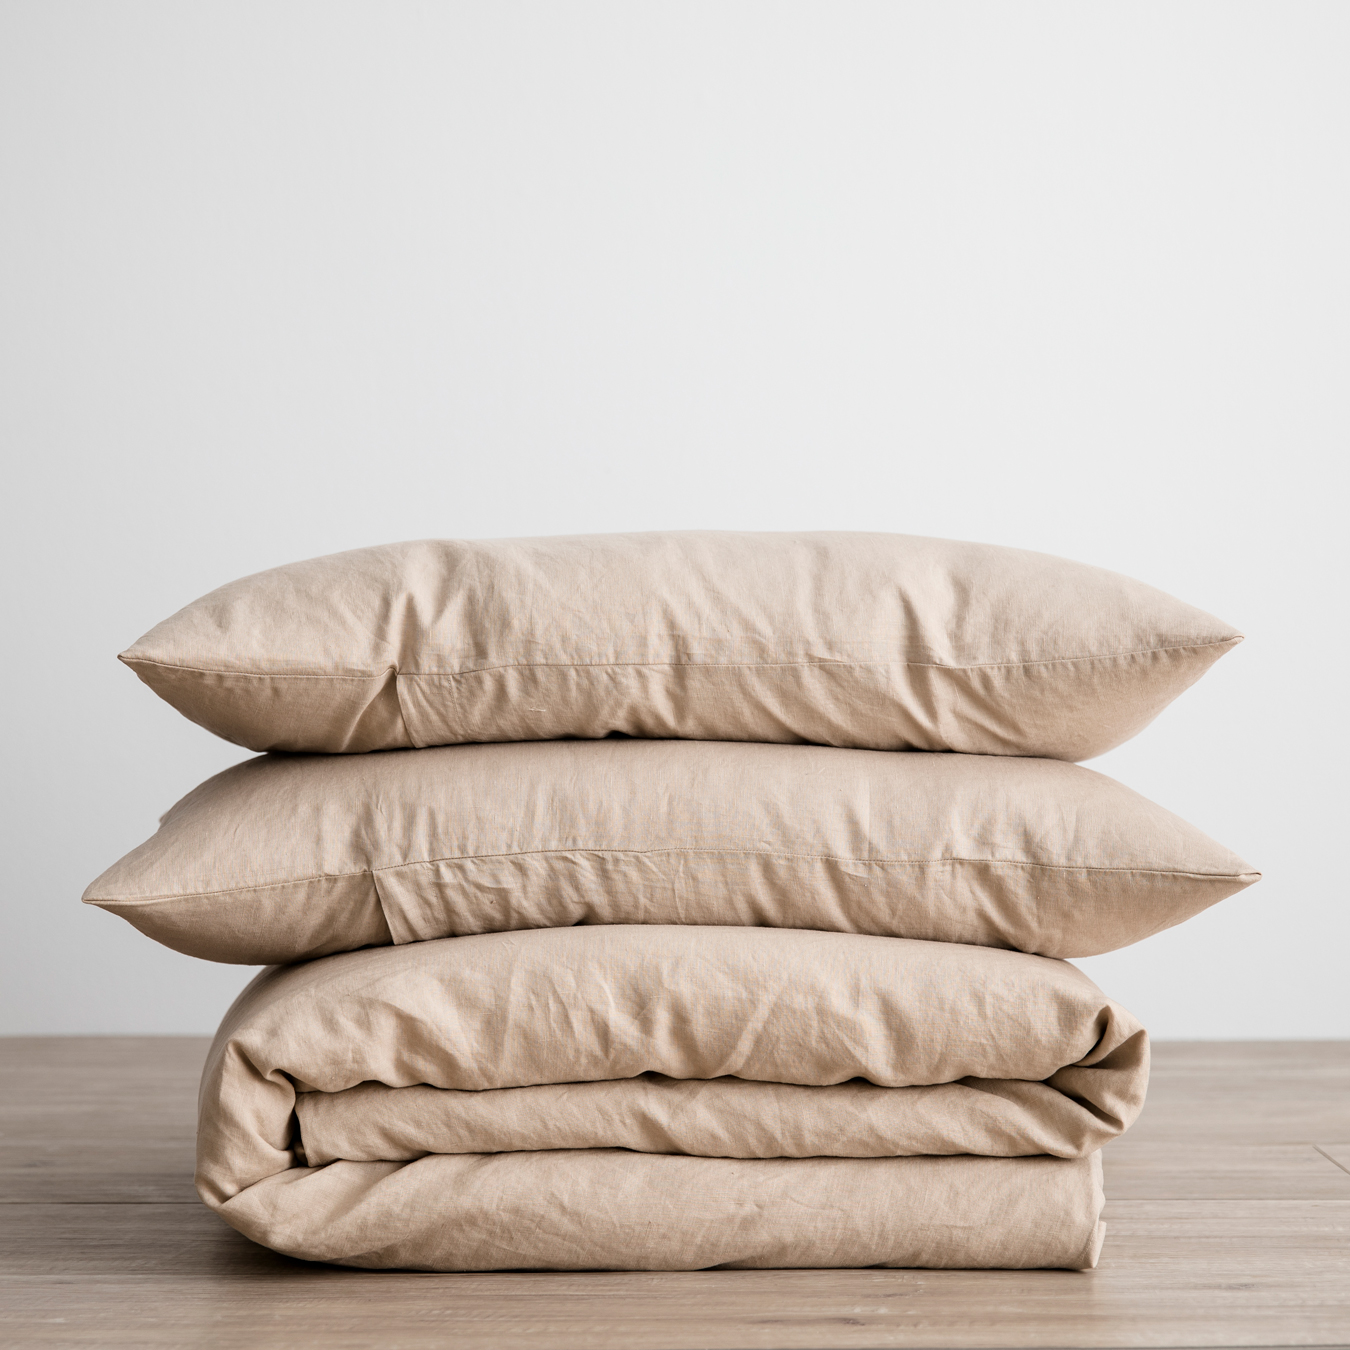 King Linen Duvet Cover Set - with pillowcases - Nude